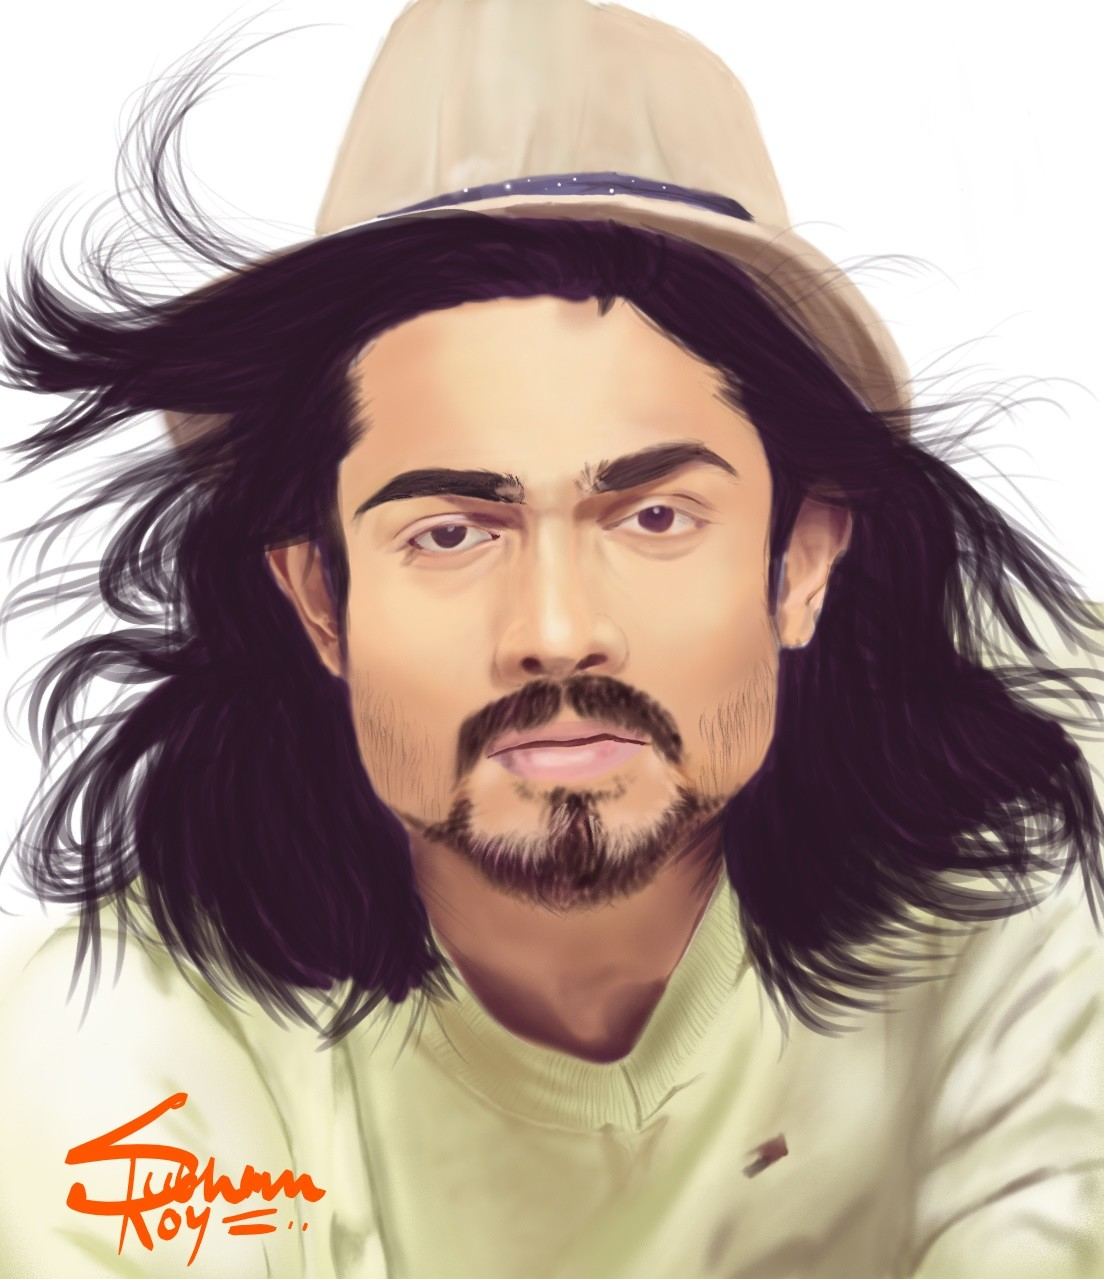 PORTRAIT OF BHUVAN BAM. THE GREAT INDIAN YOUTUBER.